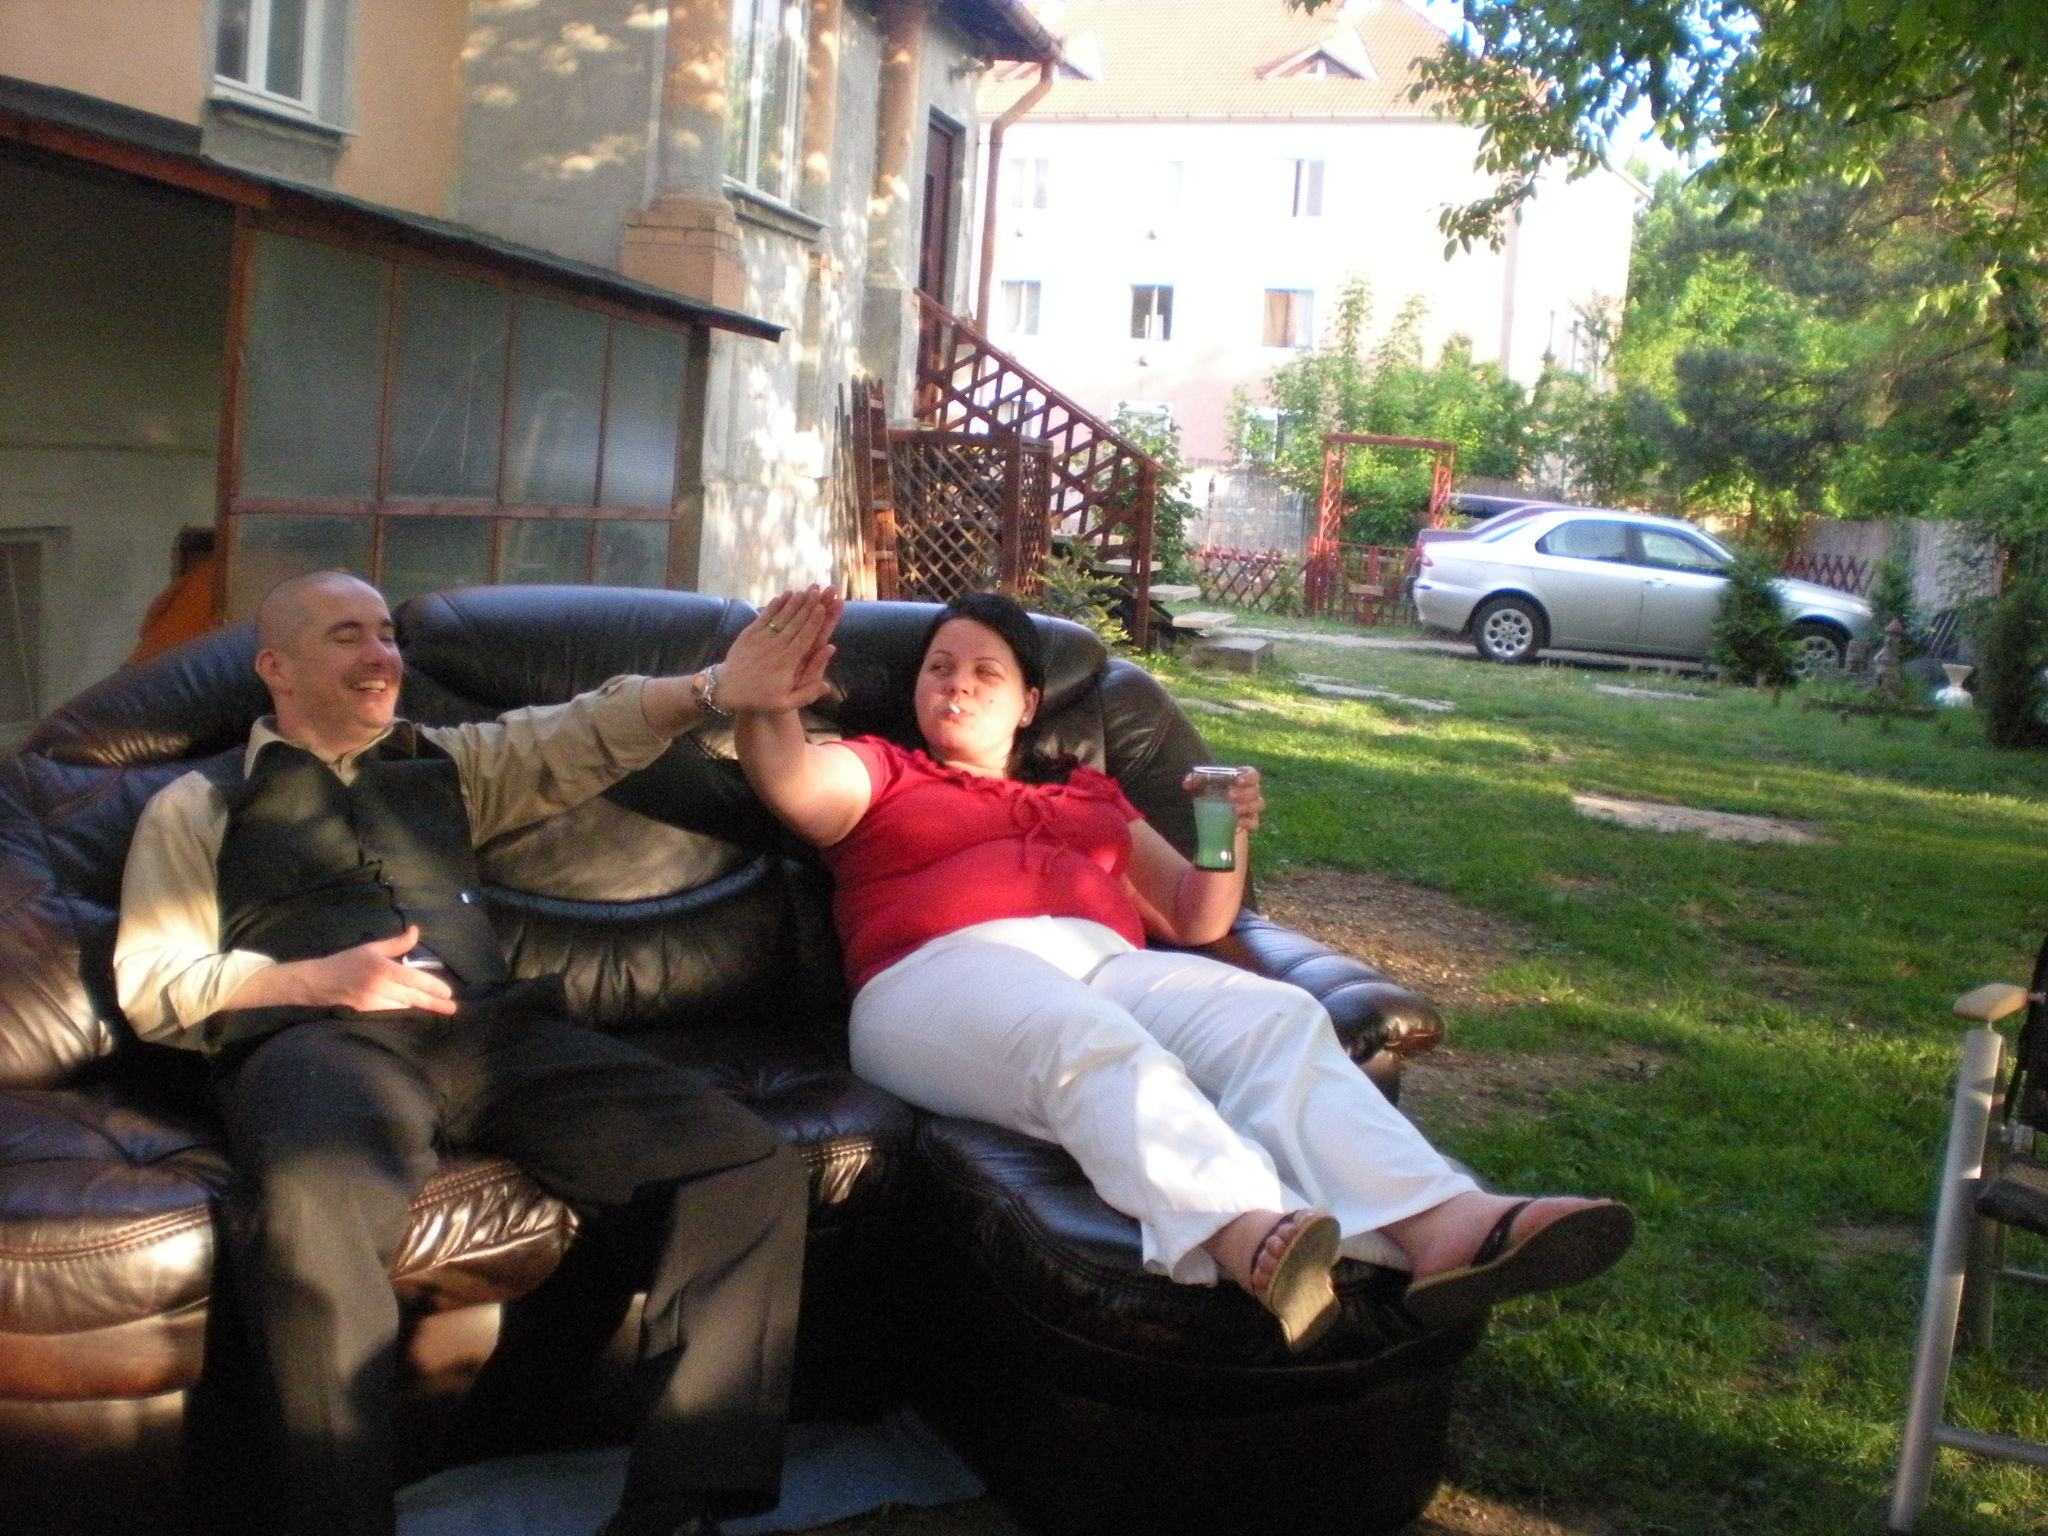 Somehow Zsolt and Andi managed to carry the leather couch from the house to the grass